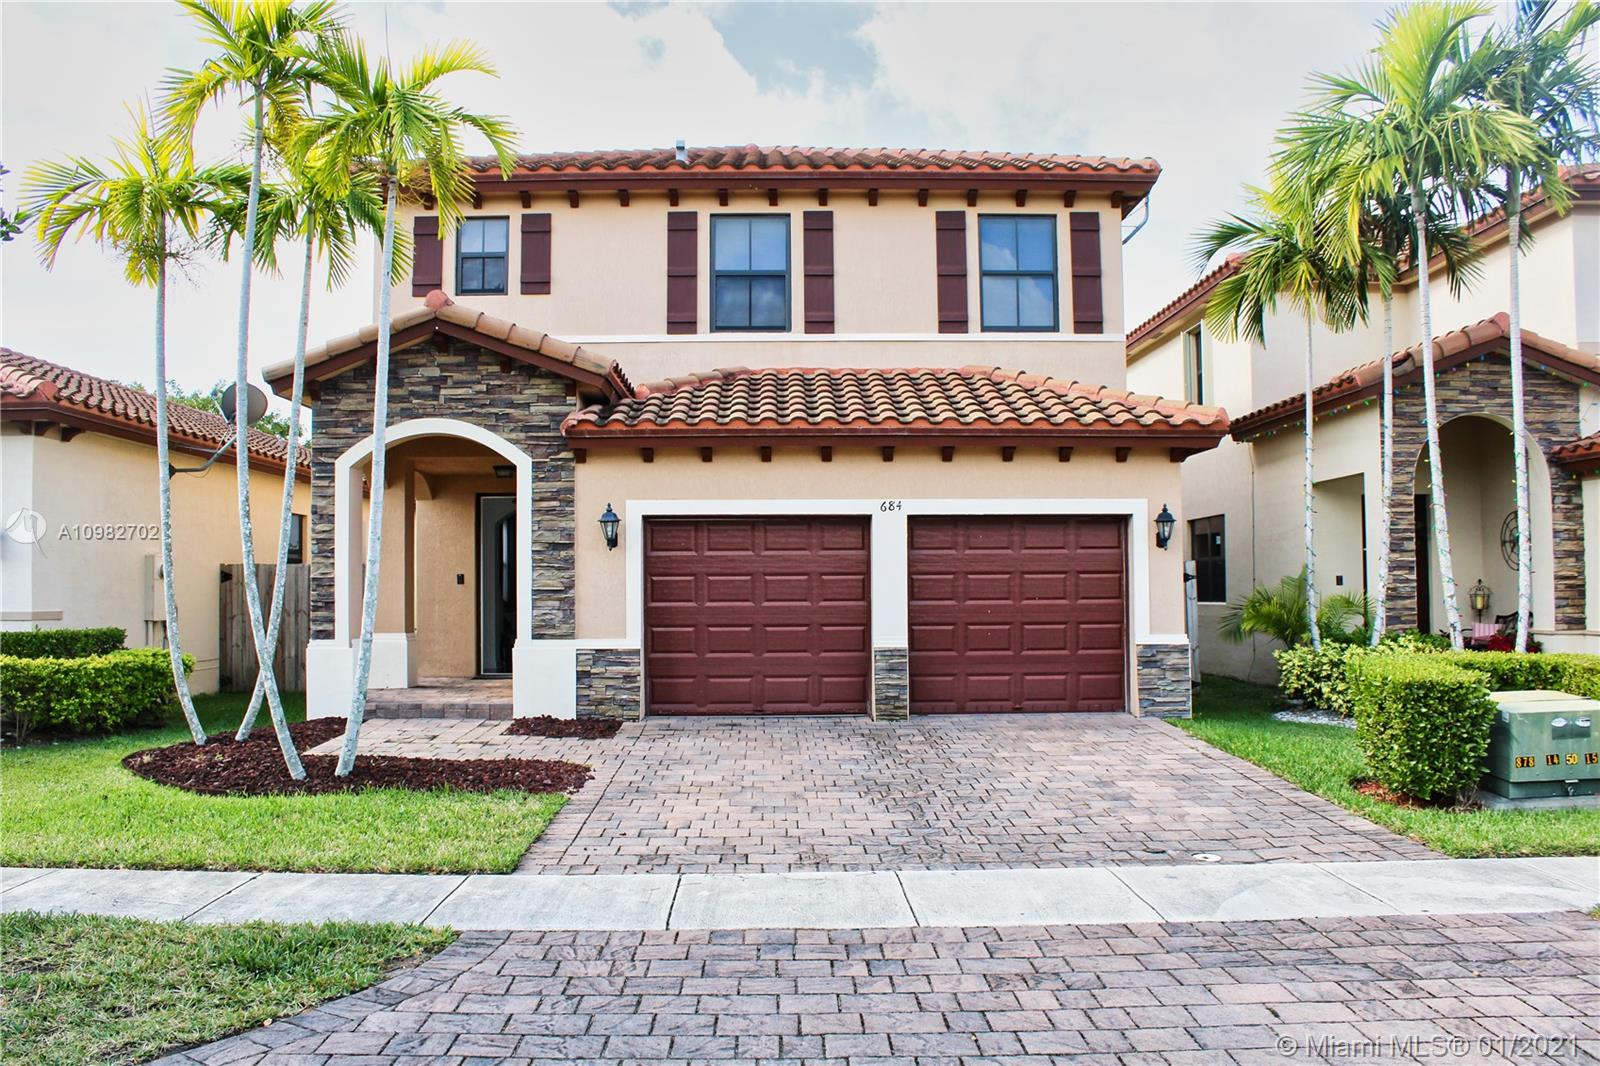 684 SE 34th Ter, Homestead, Florida 33033, 5 Bedrooms Bedrooms, ,3 BathroomsBathrooms,Residential,For Sale,684 SE 34th Ter,A10982702